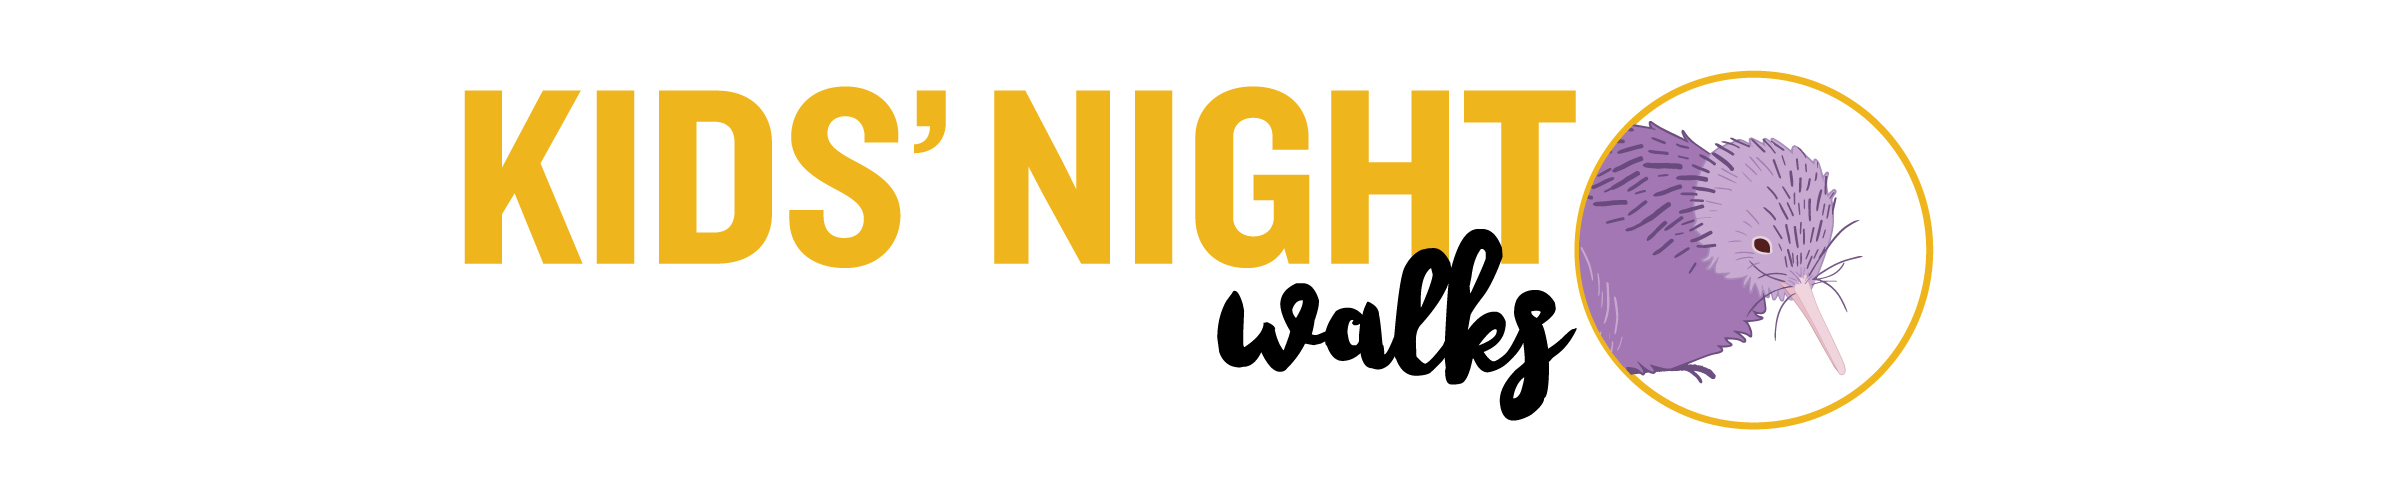 Kids Night Walks Logo